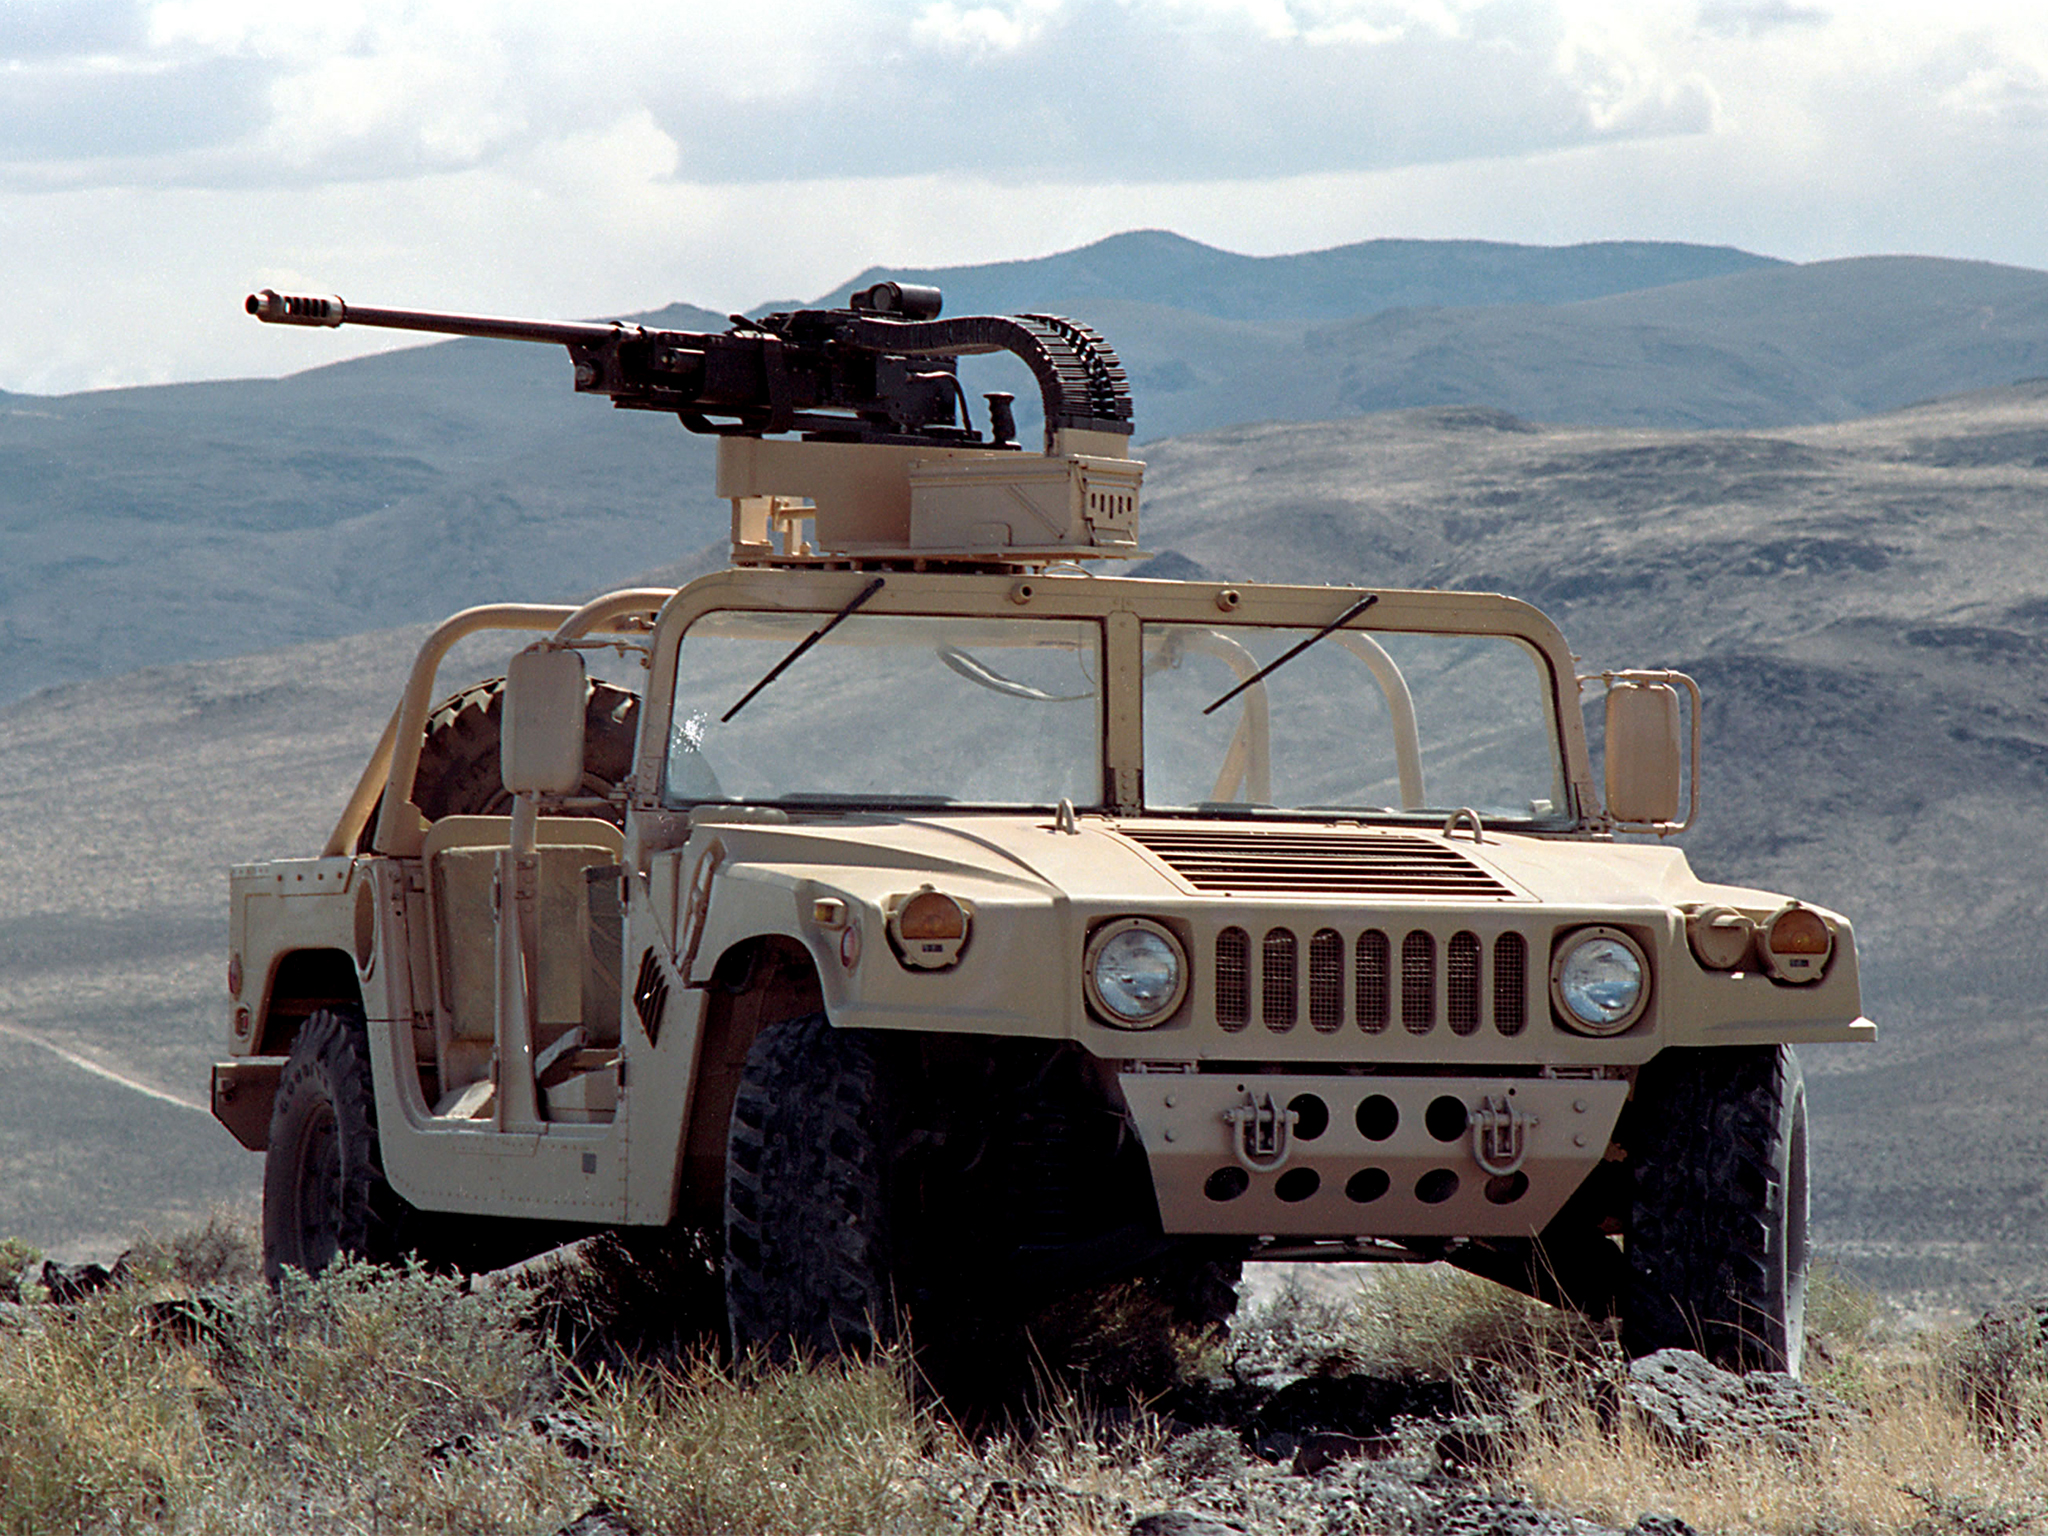 1995 HMMWV M1097A2 Special Force hummer military suv 4x4 weapon